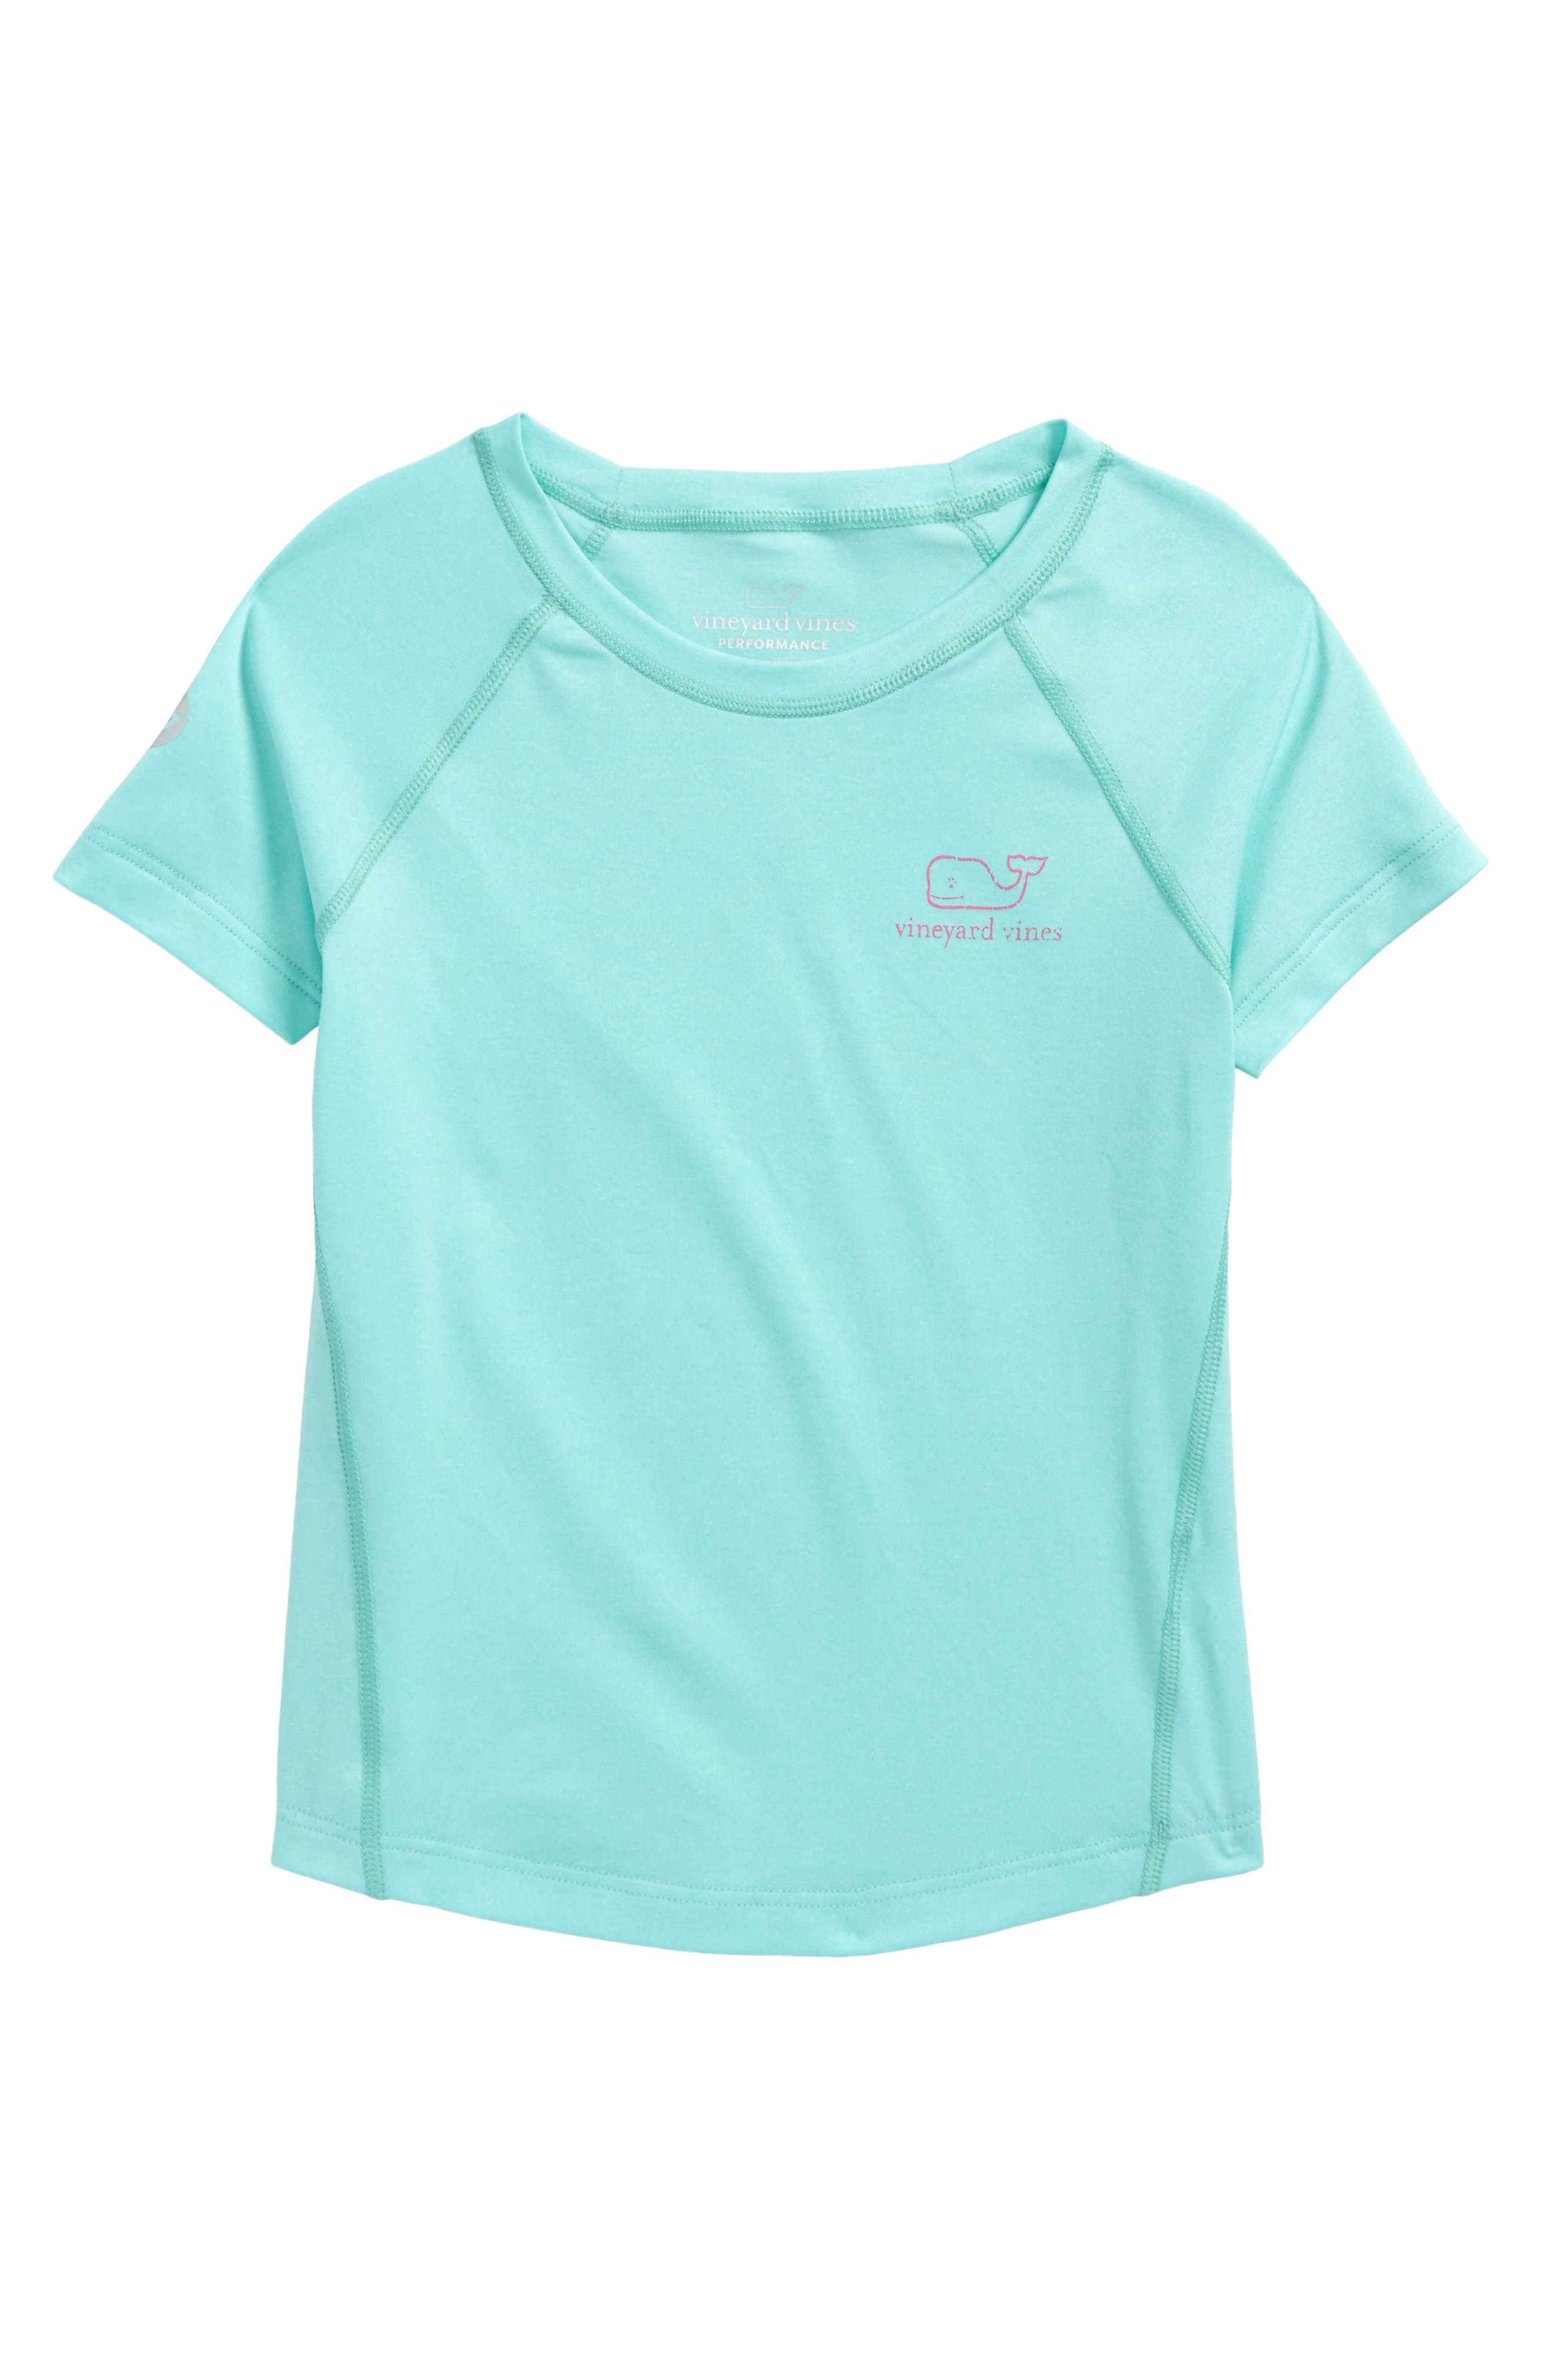 Alternate Image 1 Selected - vineyard vines Vintage Whale Performance Tee (Toddler Girls)